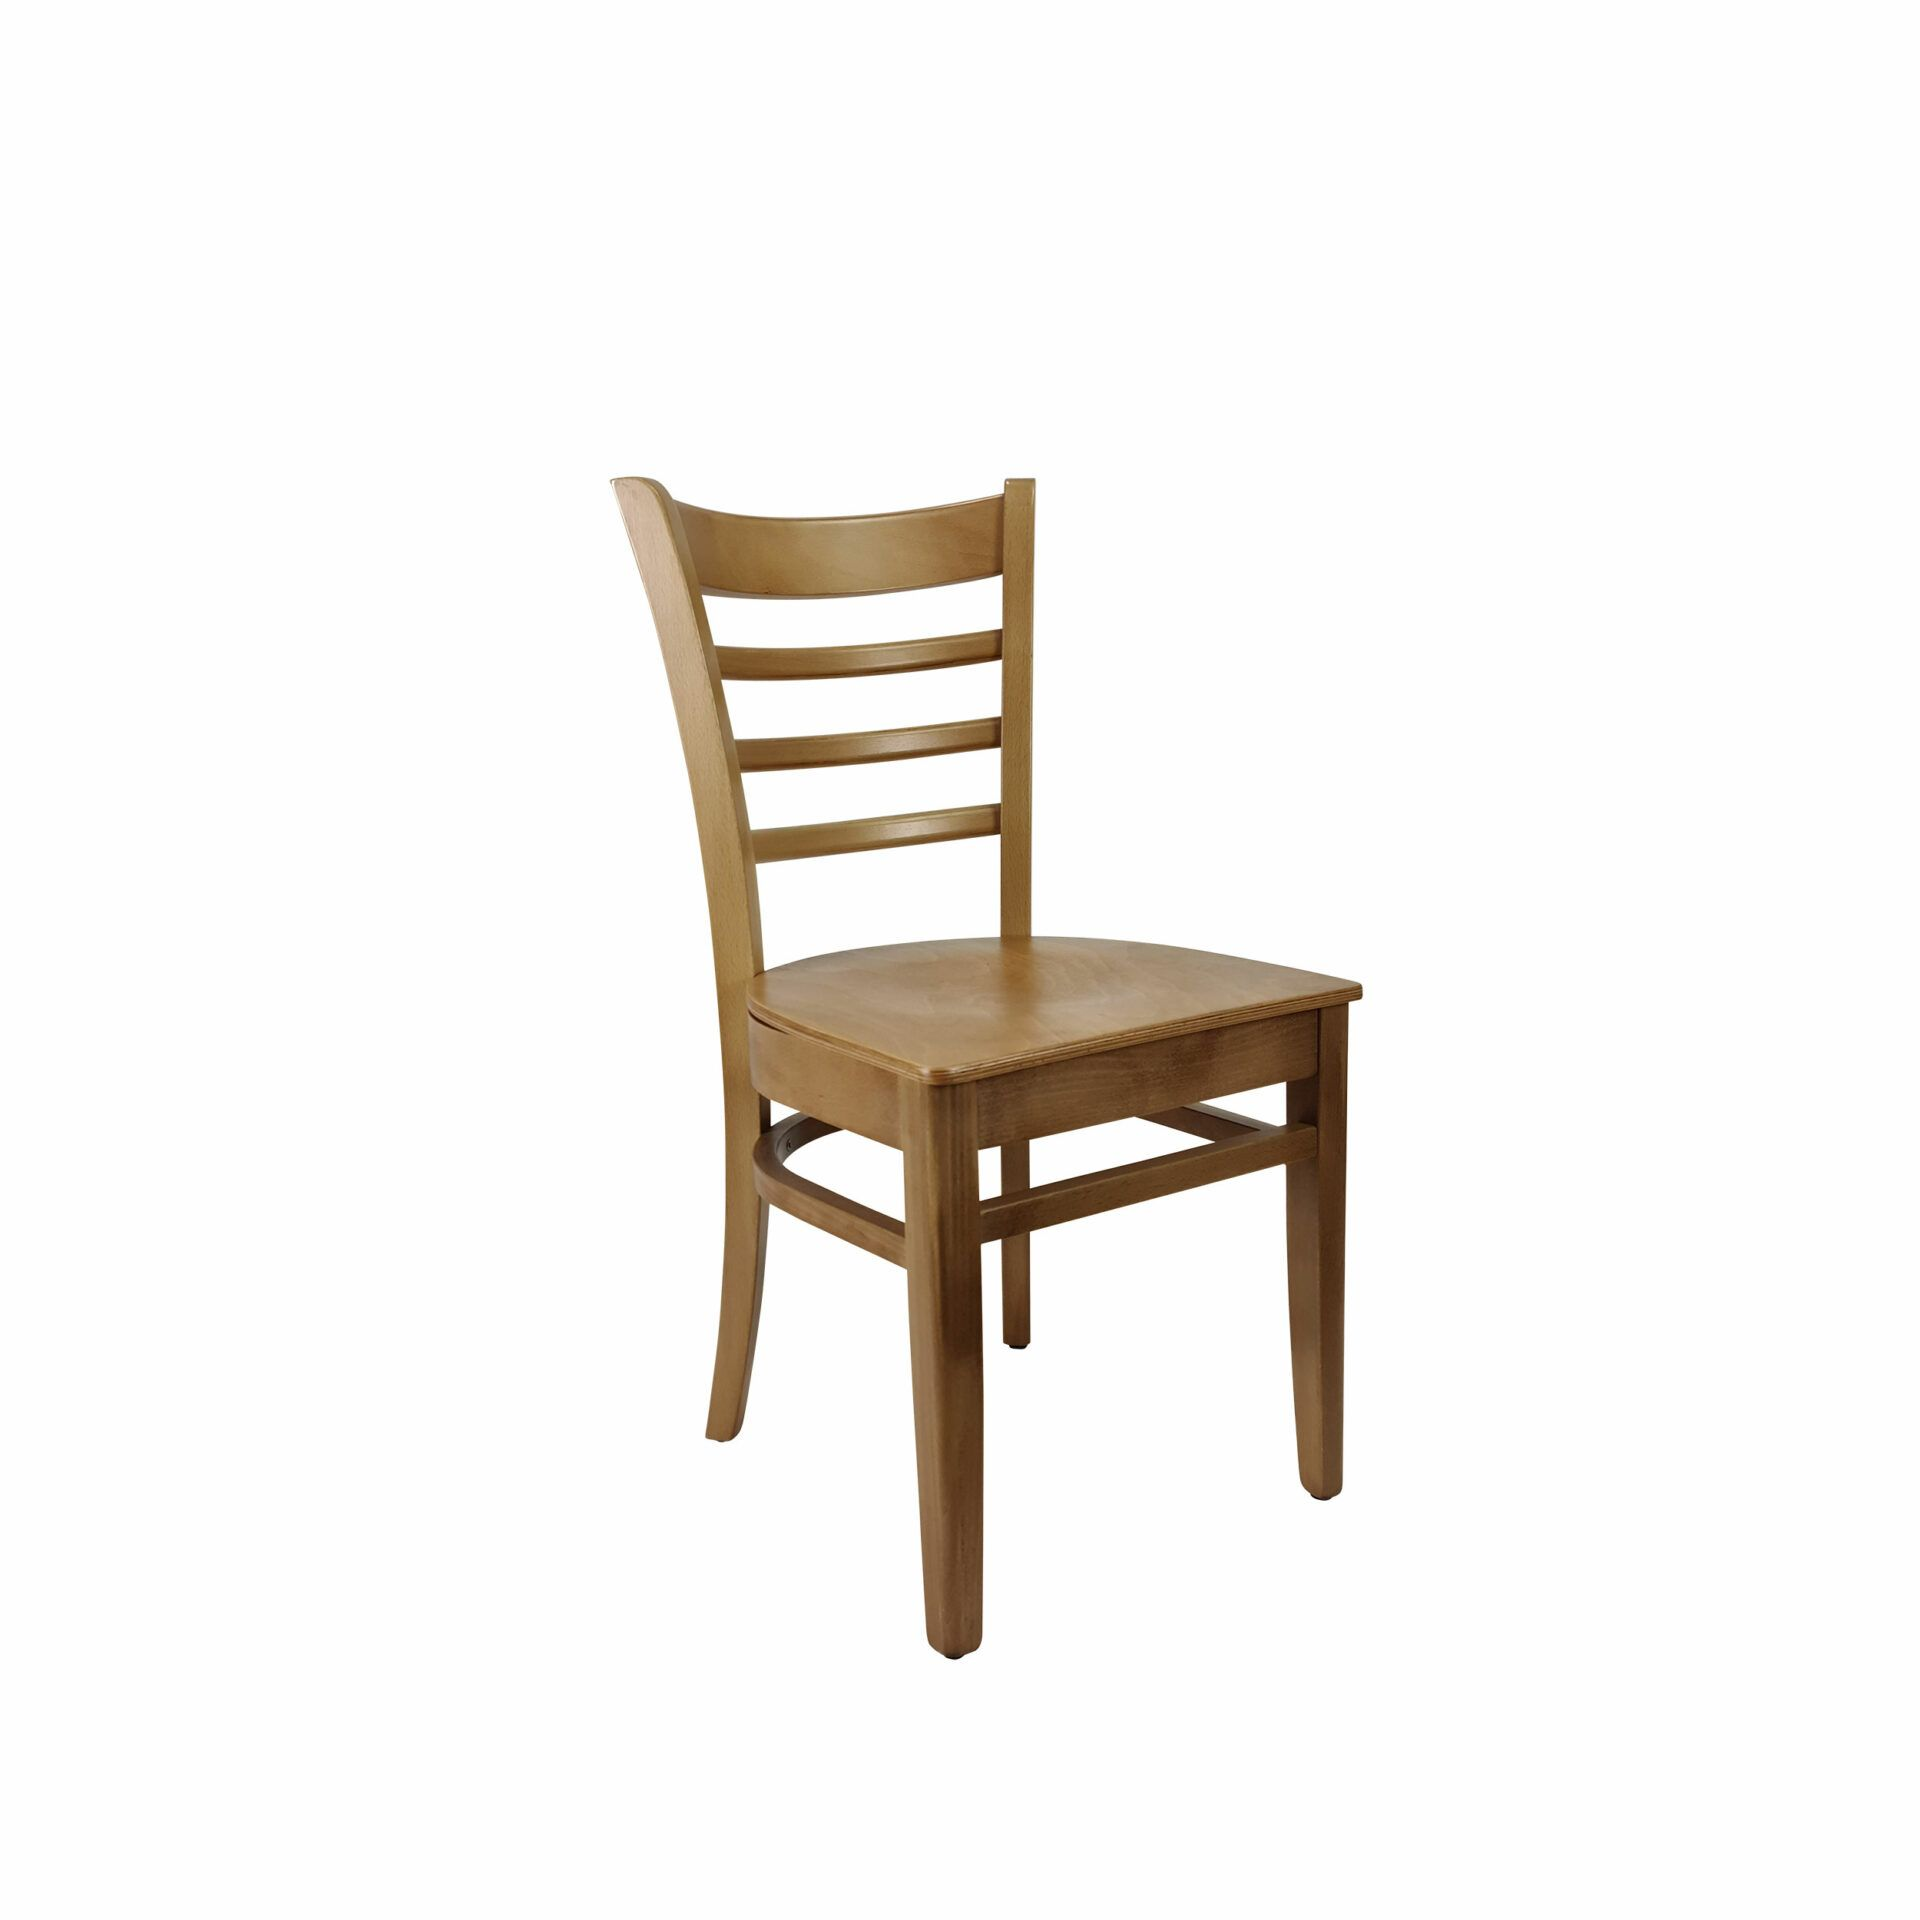 florence chair natural.front side